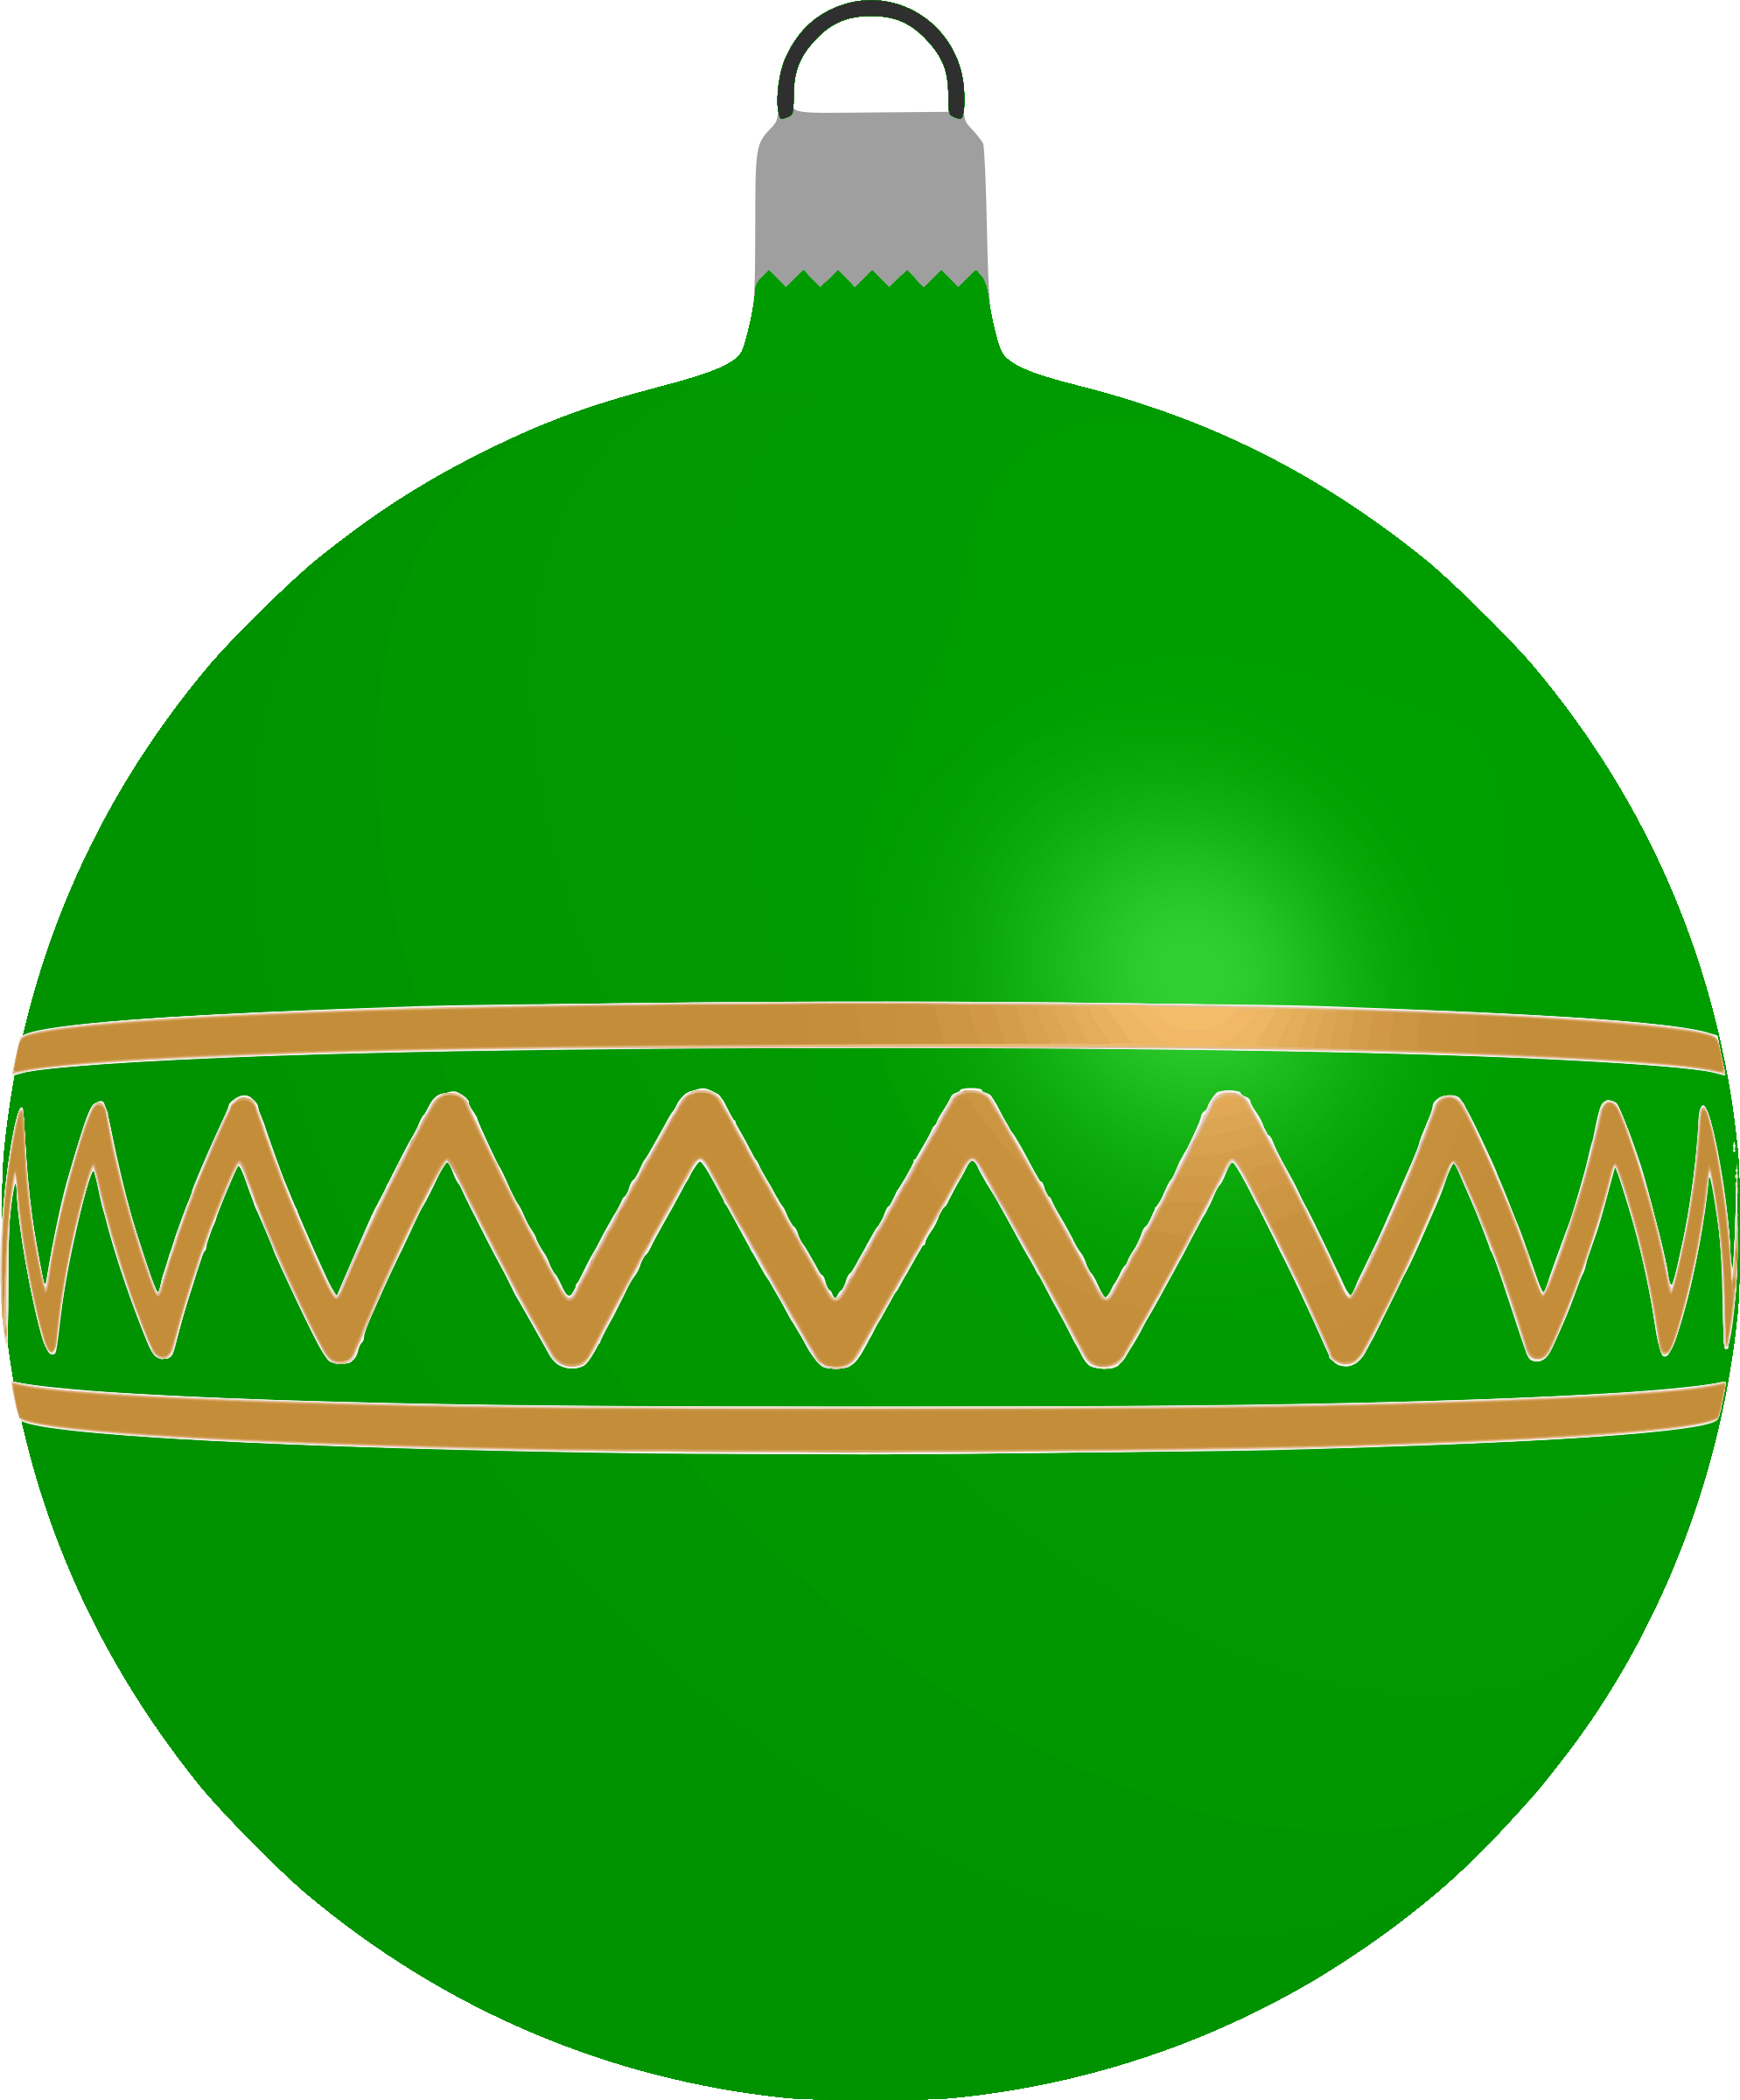 Patterned bauble 1 (green) by Firkin